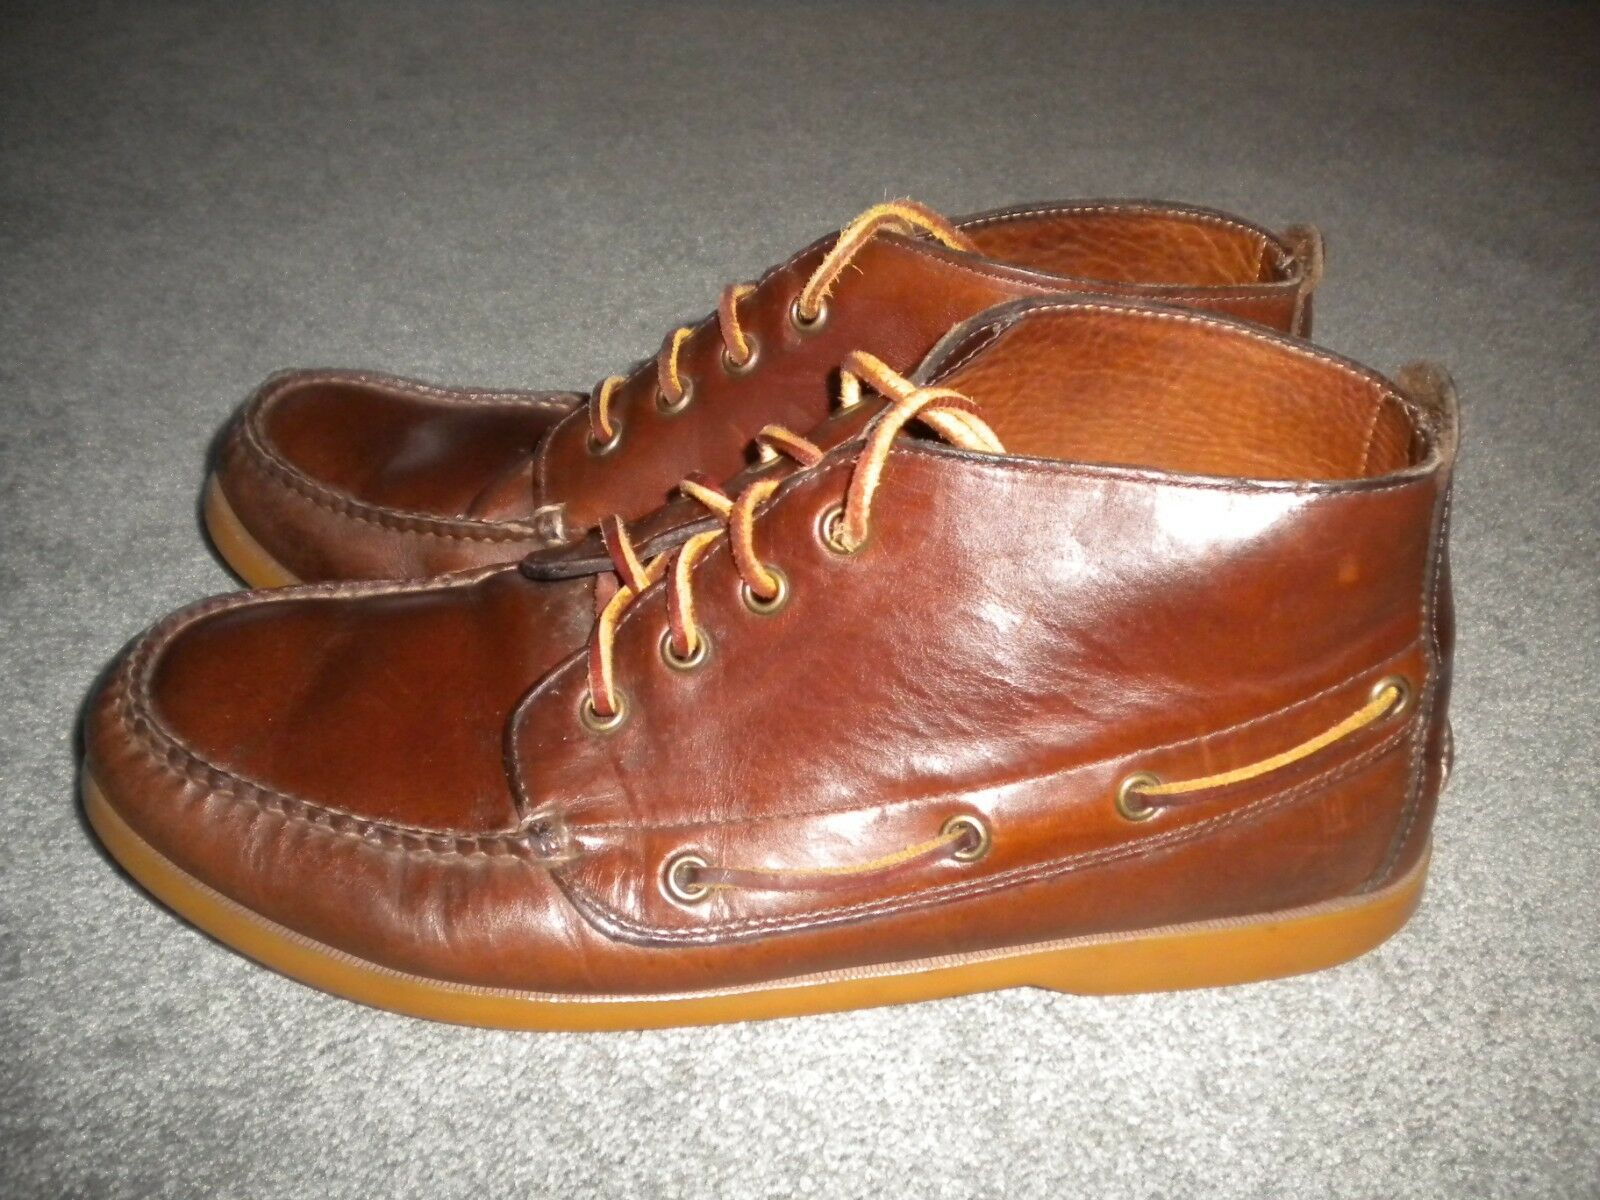 BROOKS BredHERS BROWN LEATHER ANKLE BOOTS SIZE 9.5D